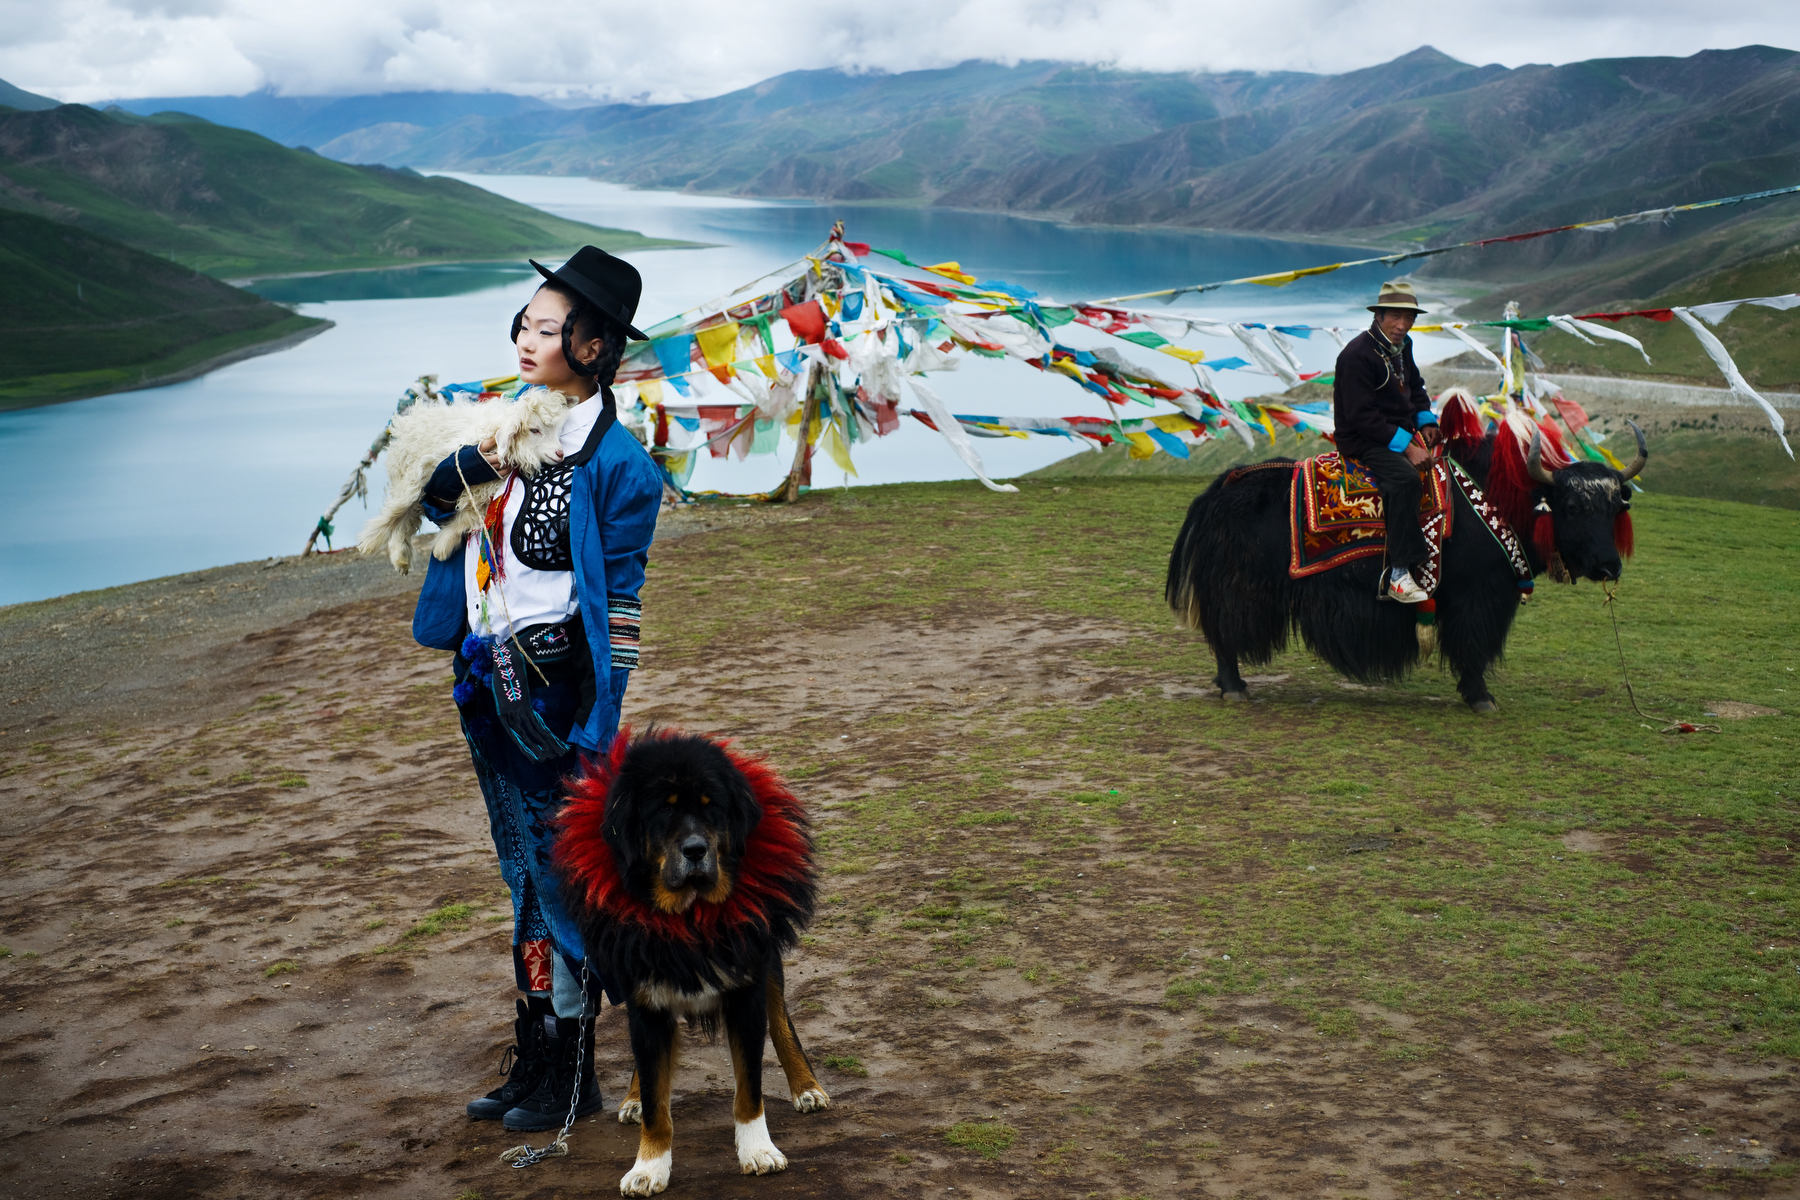 Harper's Bazaar : Seven Days in Tibet